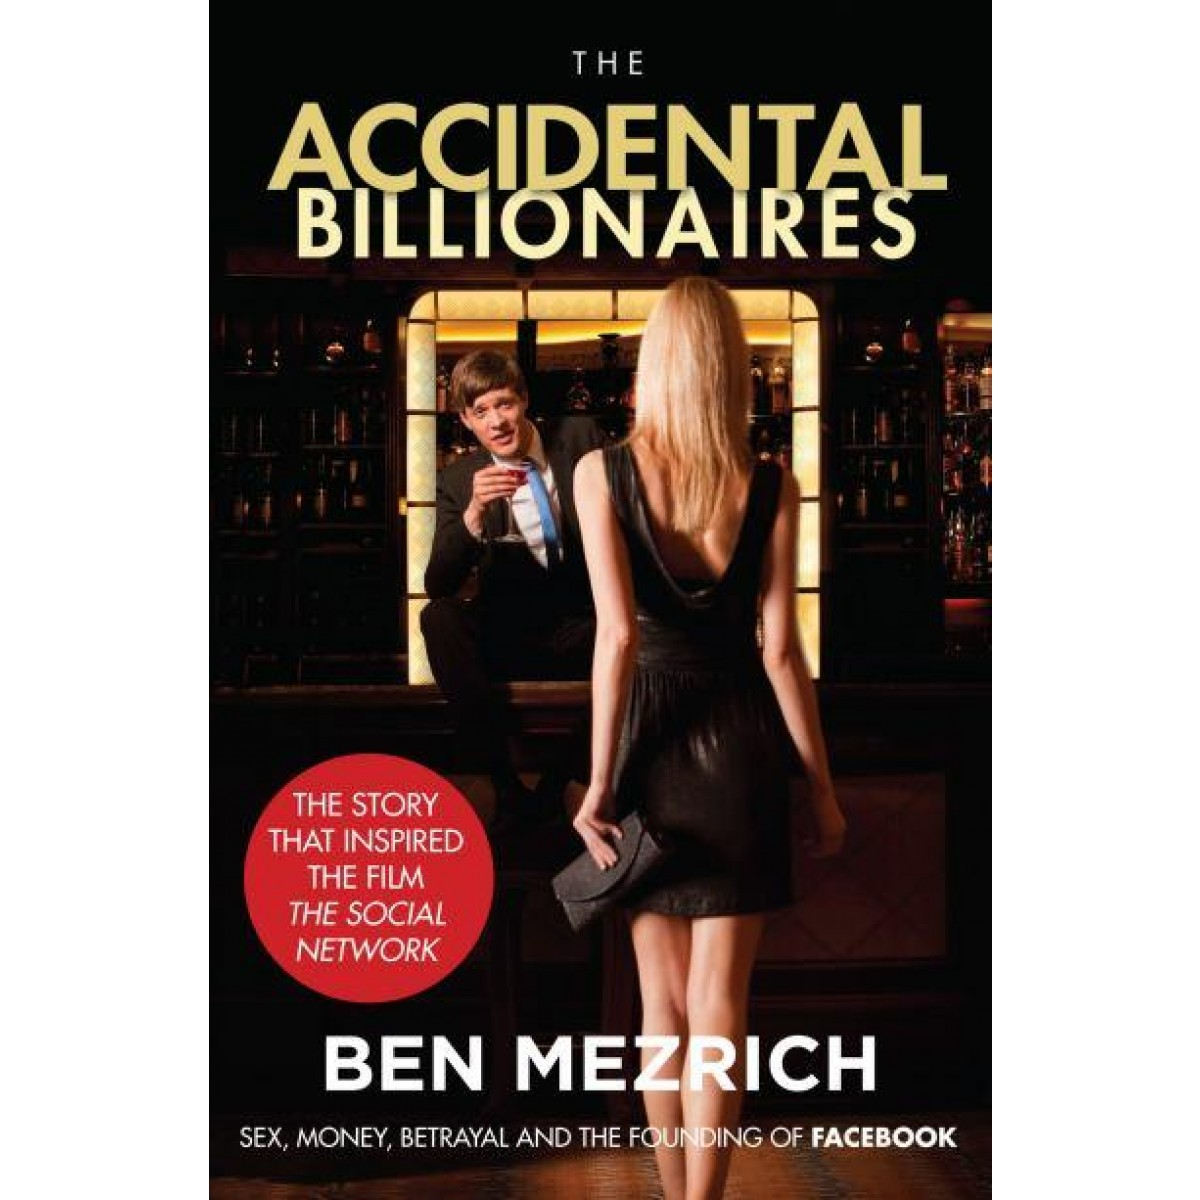 The Accidental Billionaires: Sex, Money, Betrayal and the